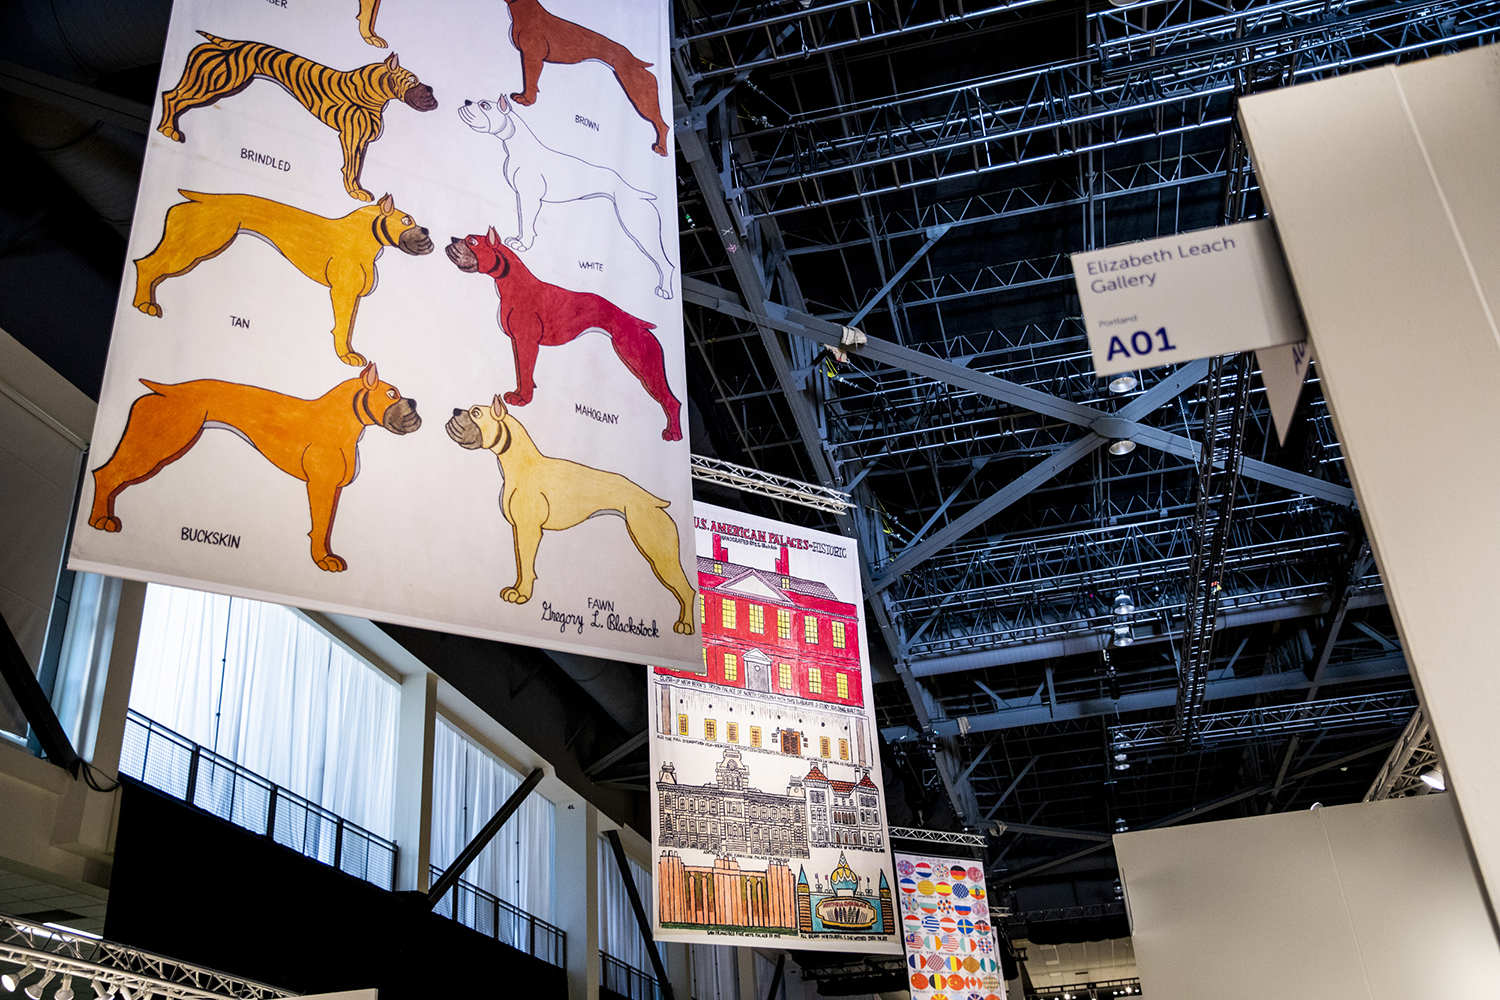 Banners by Gregory Blackstock during the Seattle Art Fair at CenturyLink Field Event Center on Aug. 1, 2019.